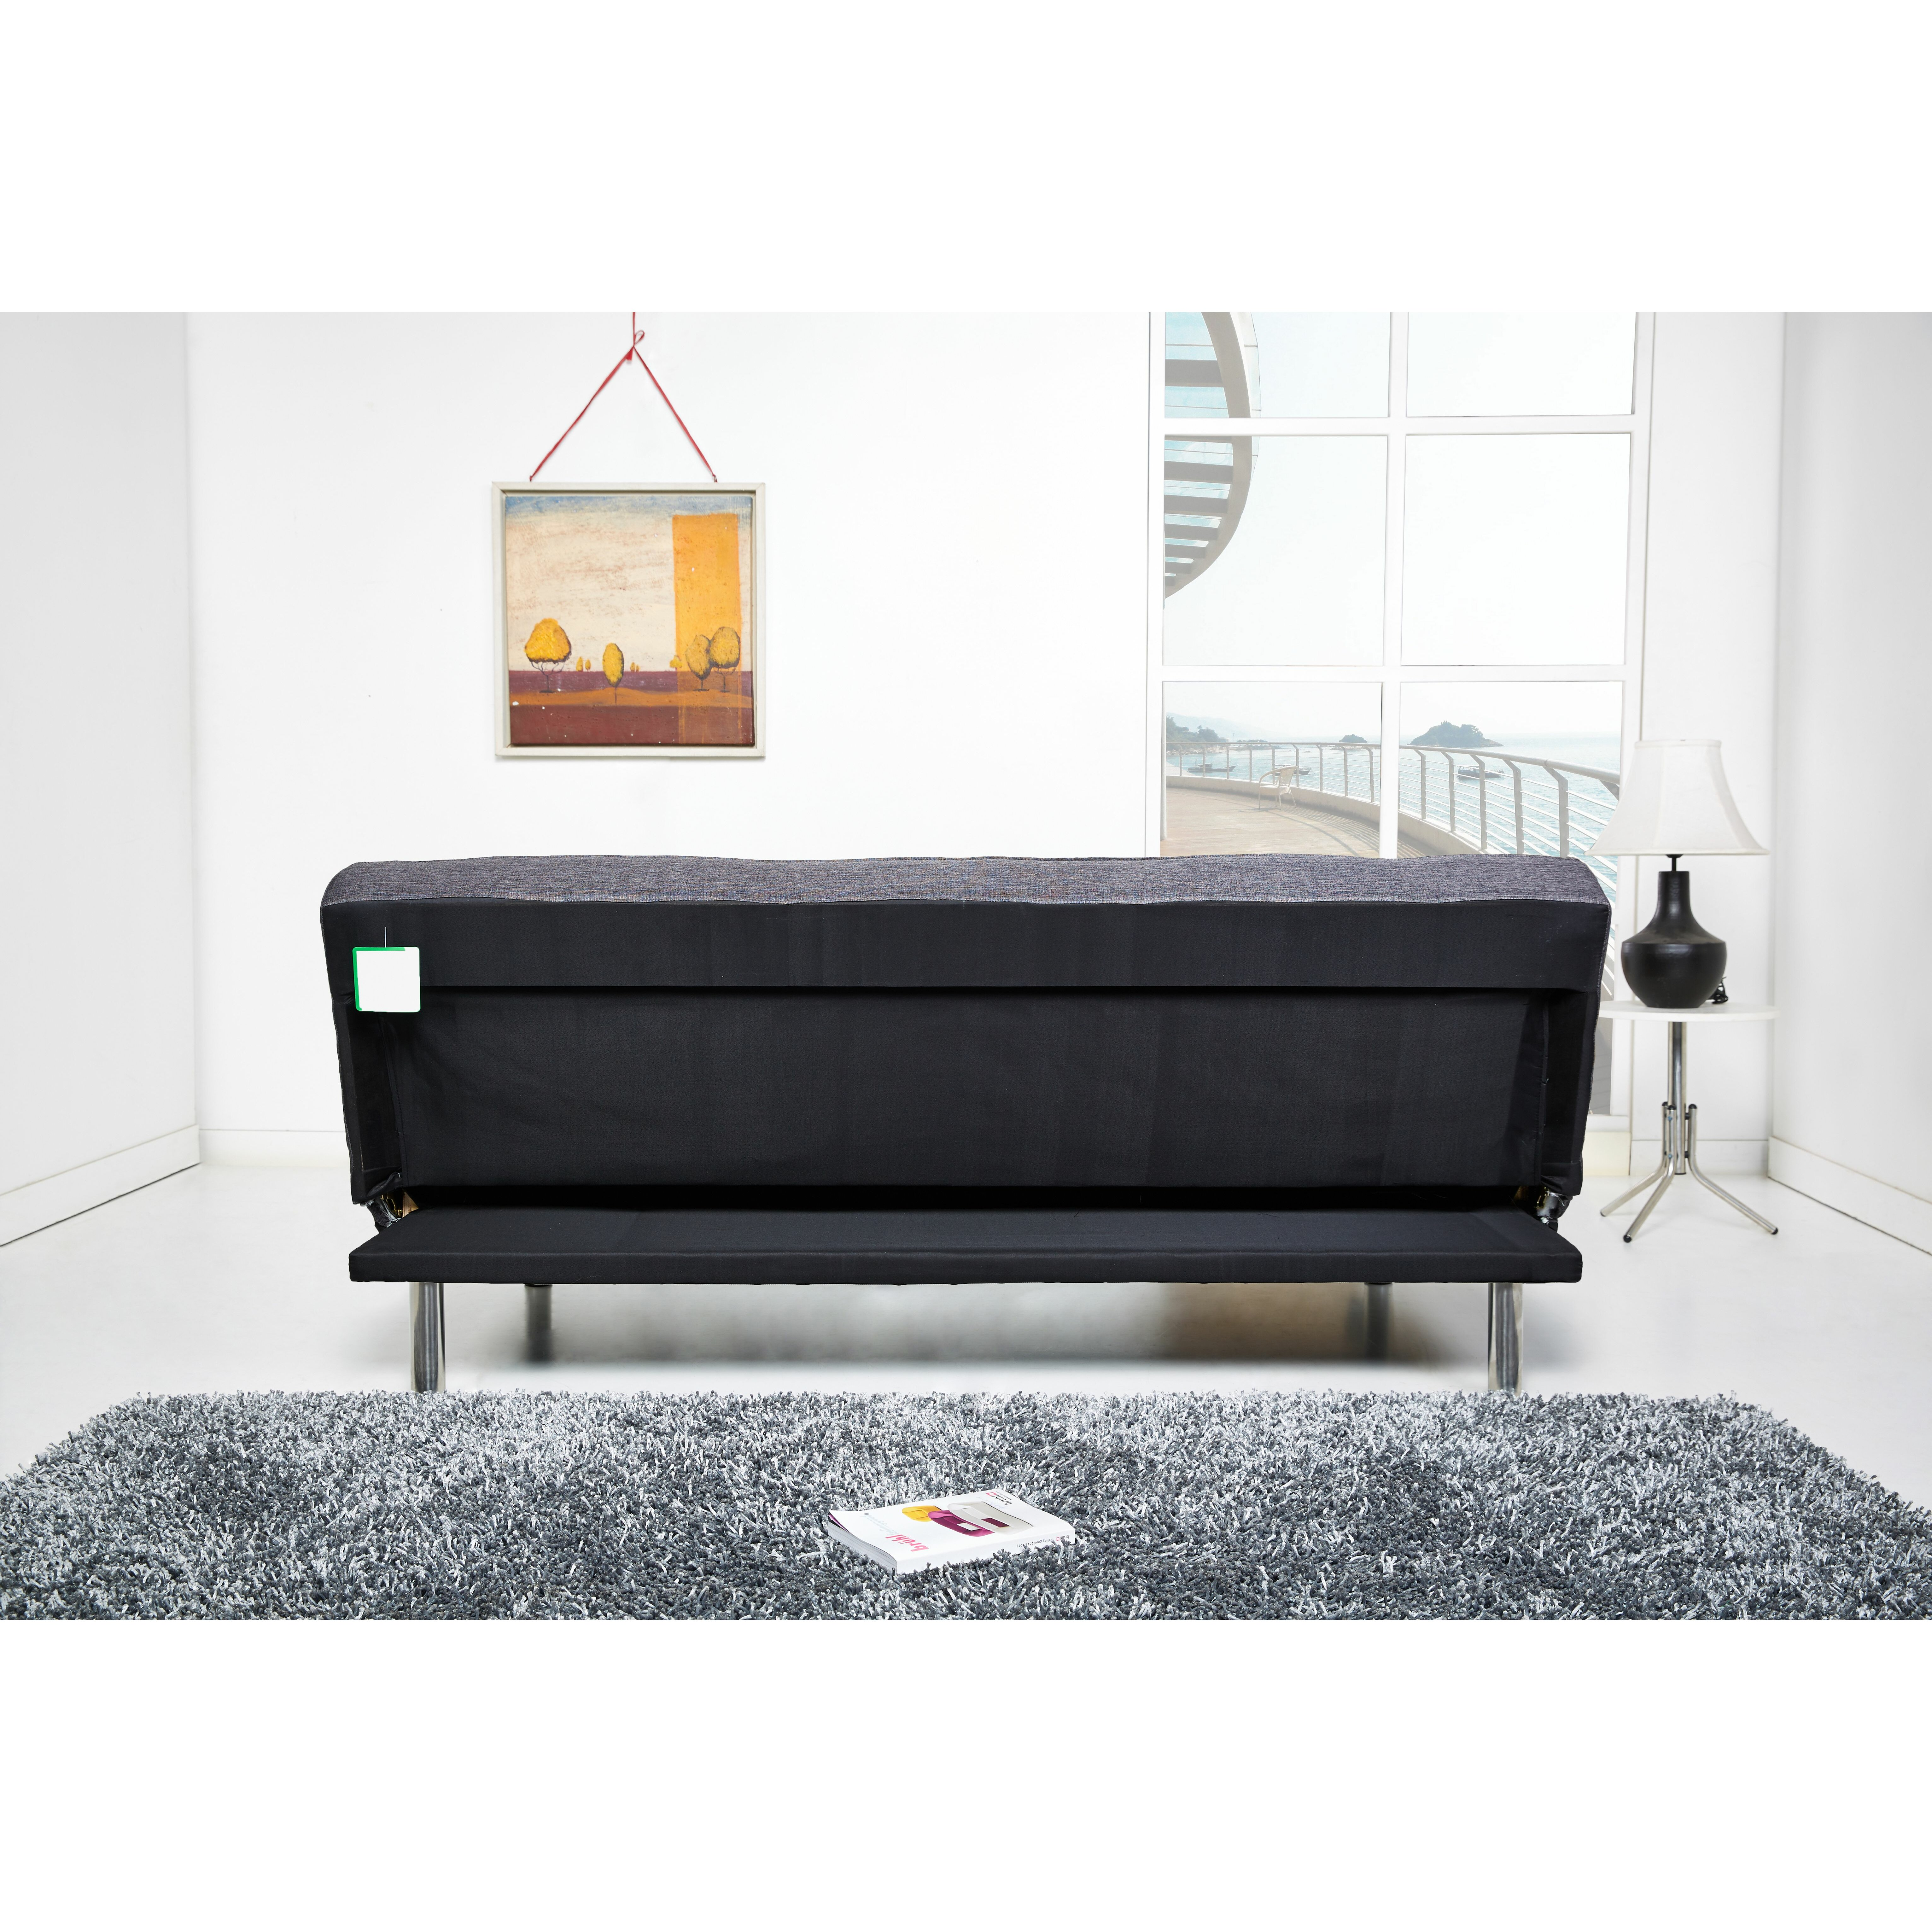 leader lifestyle zenko 3 seater clic clac sofa bed. Black Bedroom Furniture Sets. Home Design Ideas